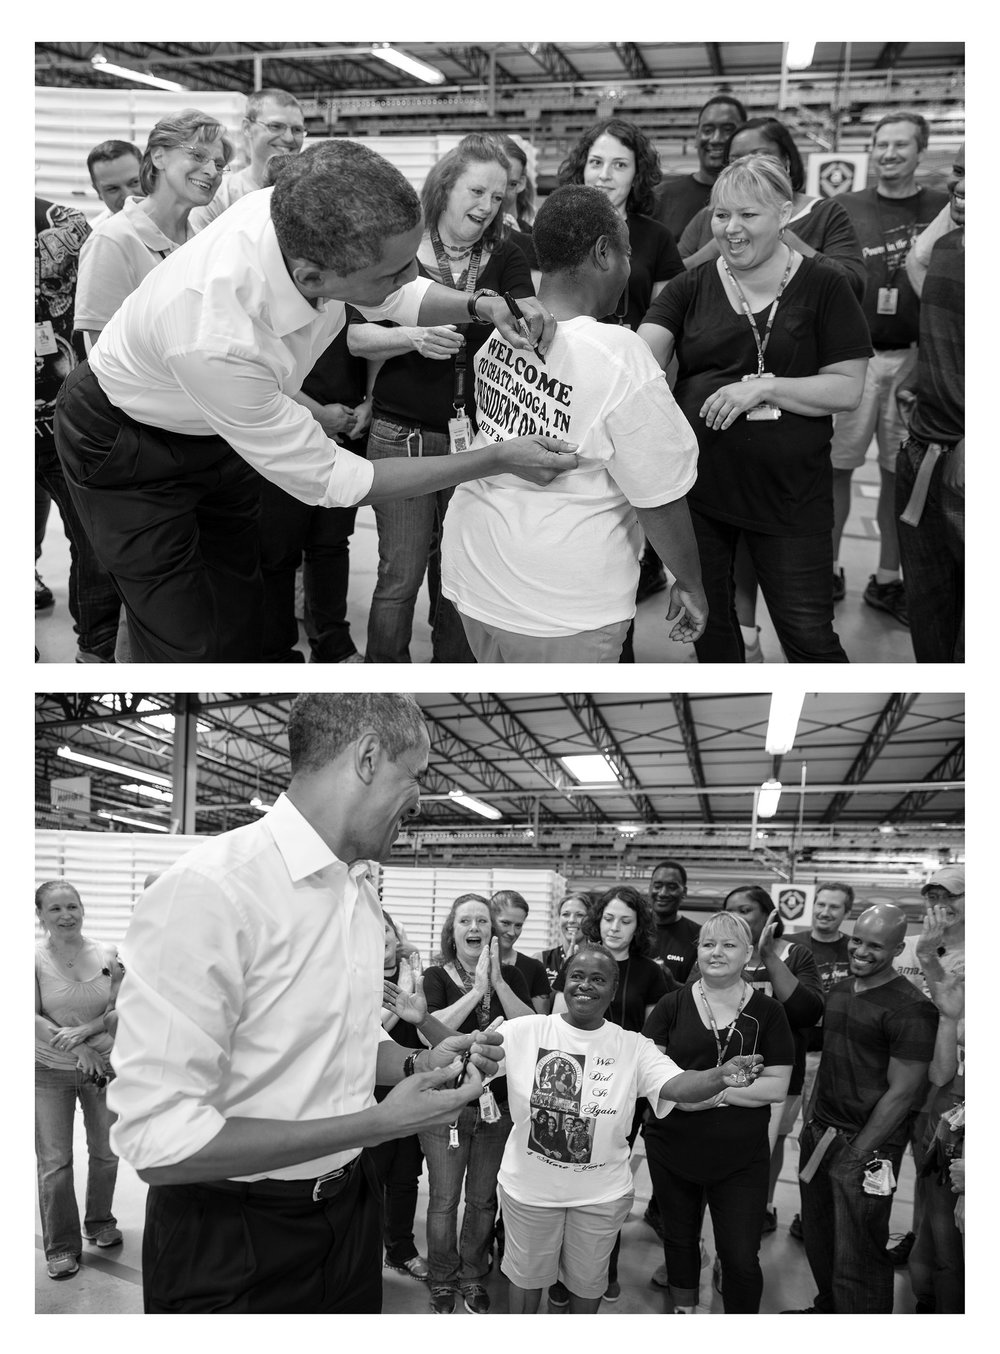 President Barack Obama signs a line worker's shirt after touring the Amazon fulfillment center in Chattanooga, Tenn., 2013.